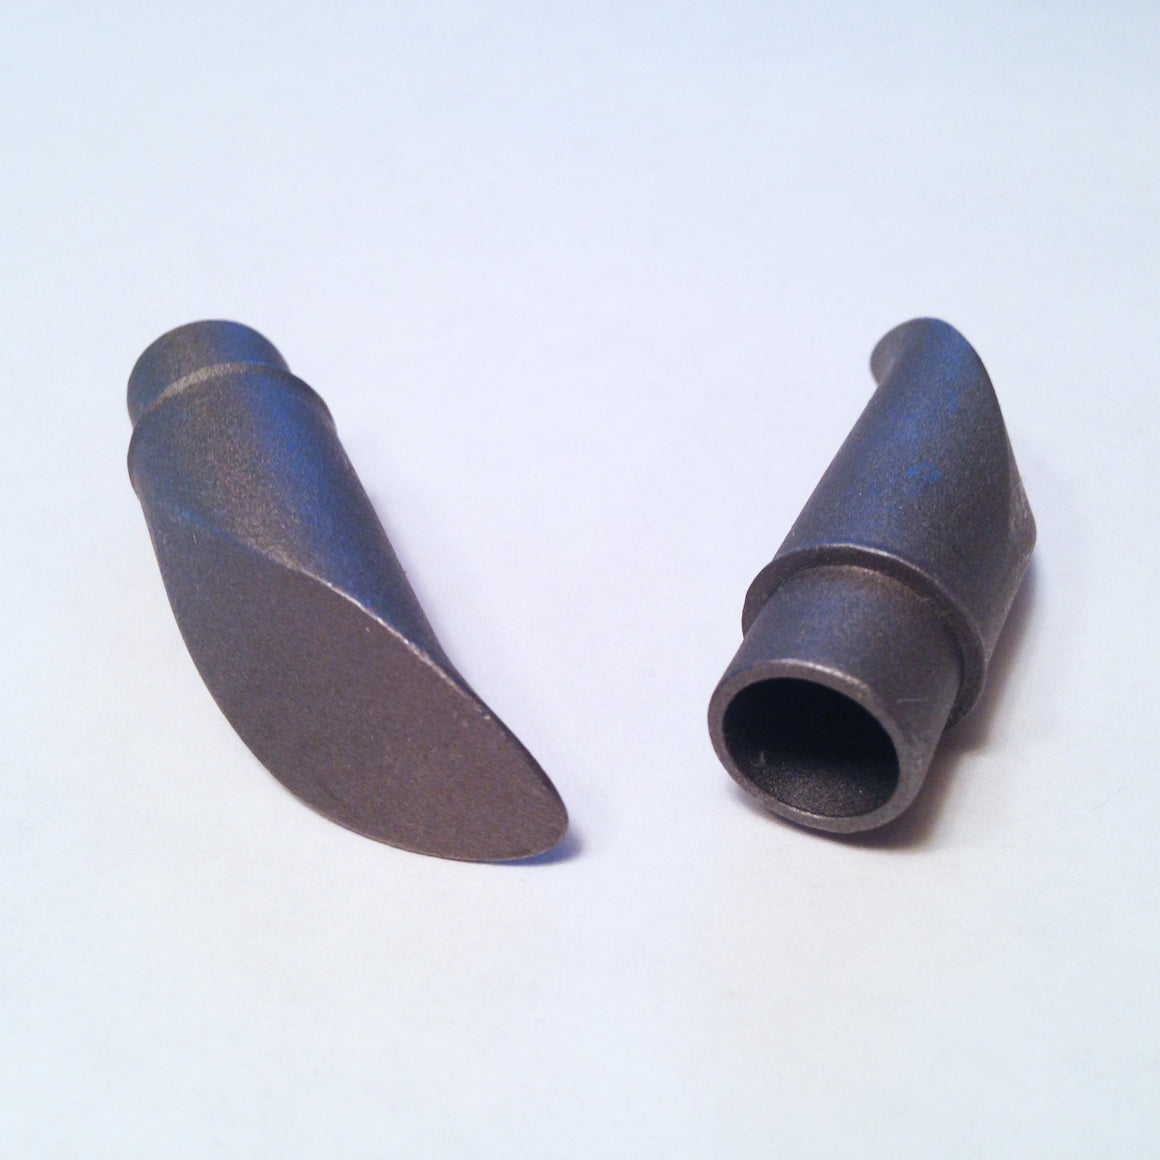 Seat stay tips for use with 12mm interior diameter tubes, curved